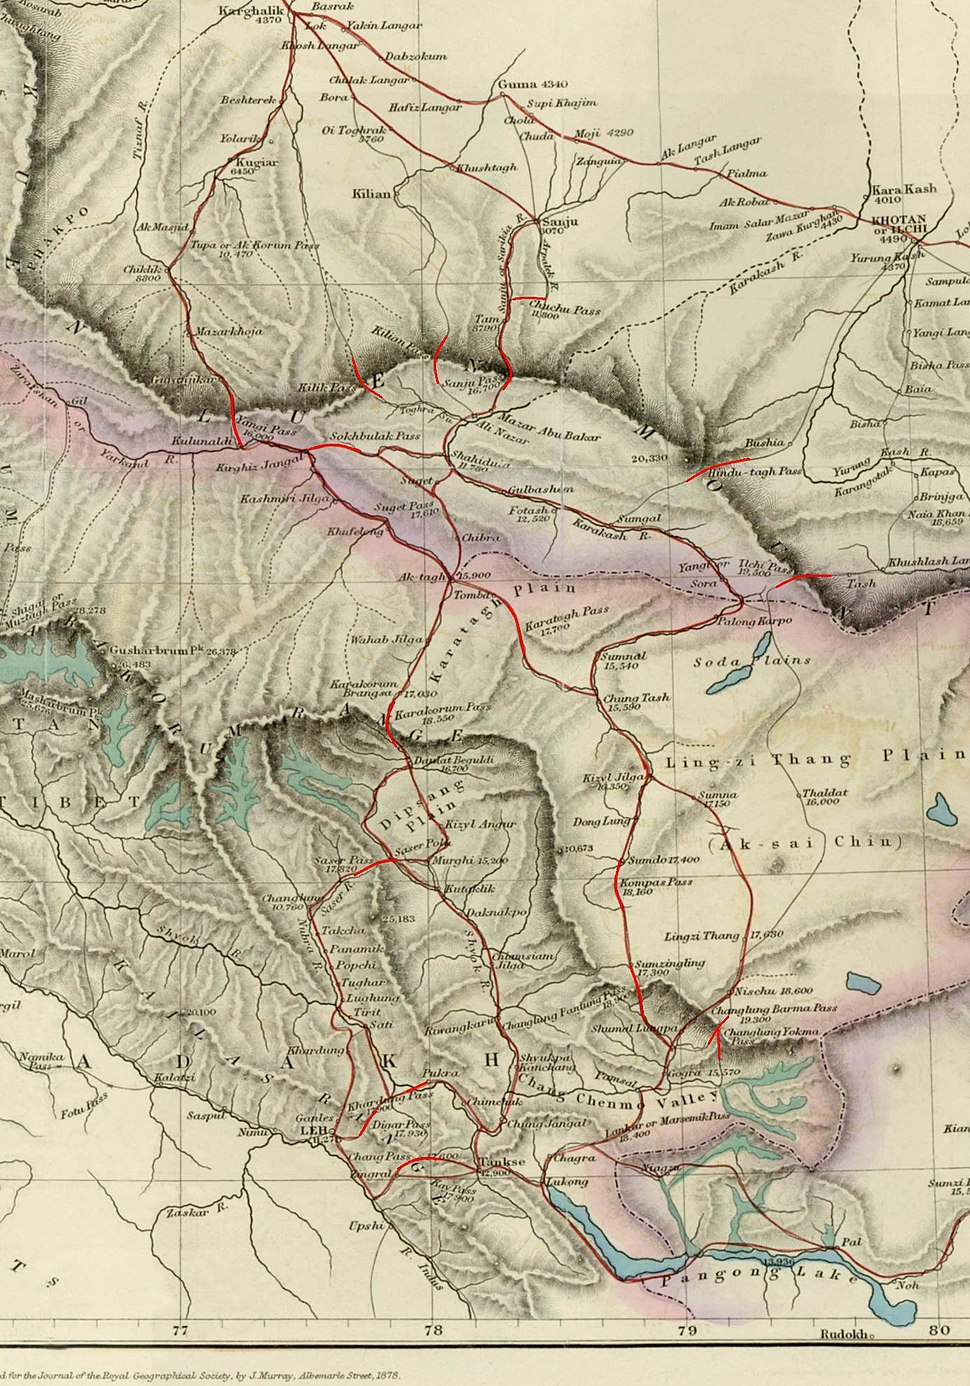 Hindutagh-pass-aksai-chin-center2-1873